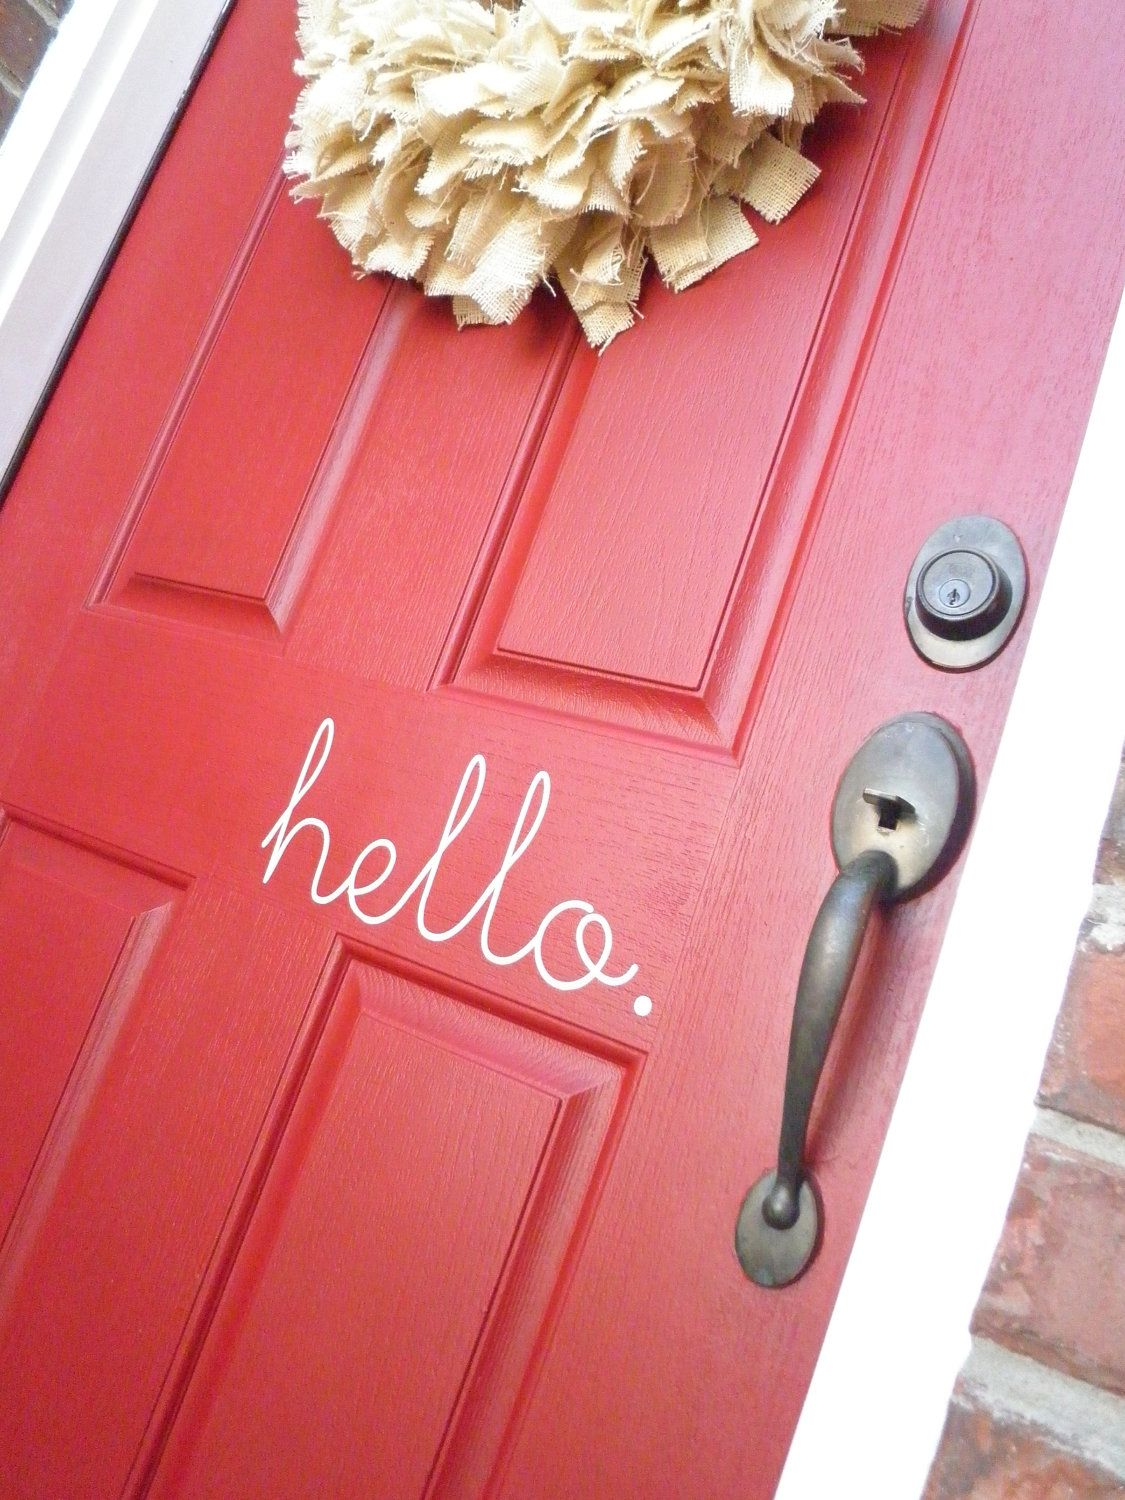 What a cute and happy front door. I love this! Going to do this ...